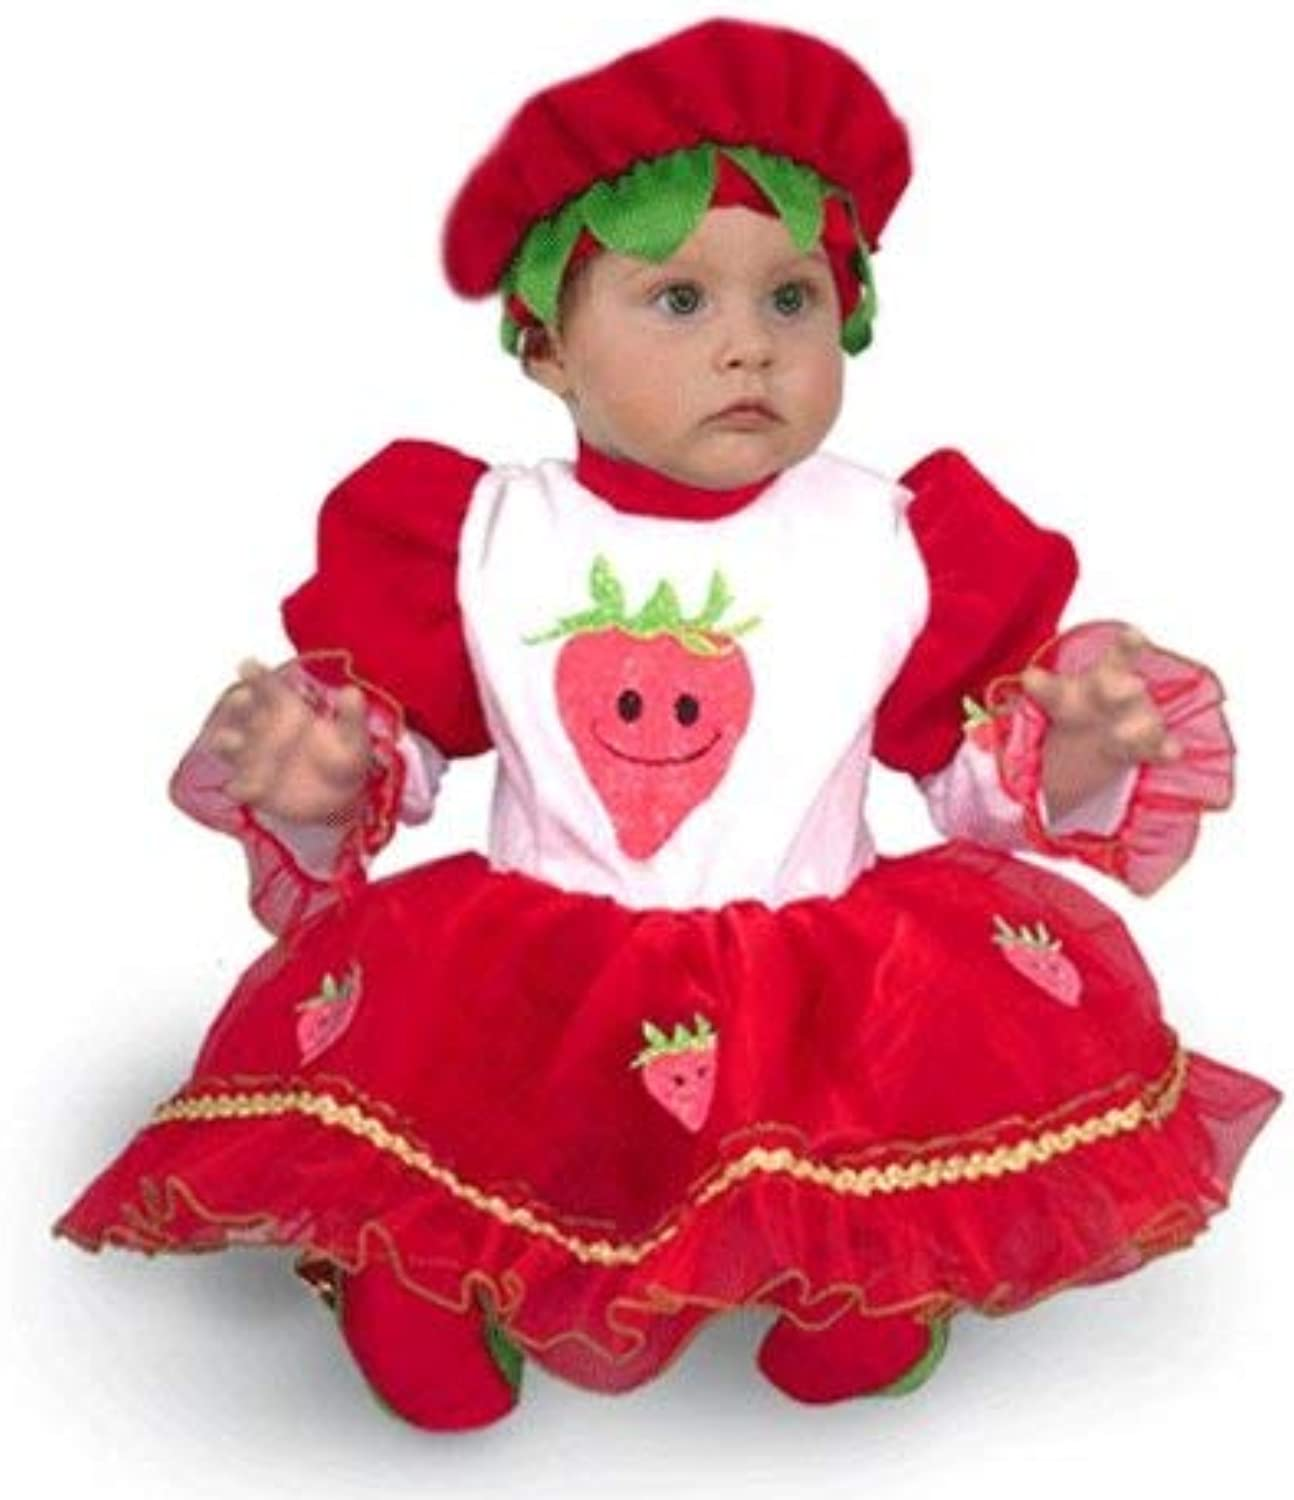 Pegasus Spiele Carnival Costume Strawberry 68 cm